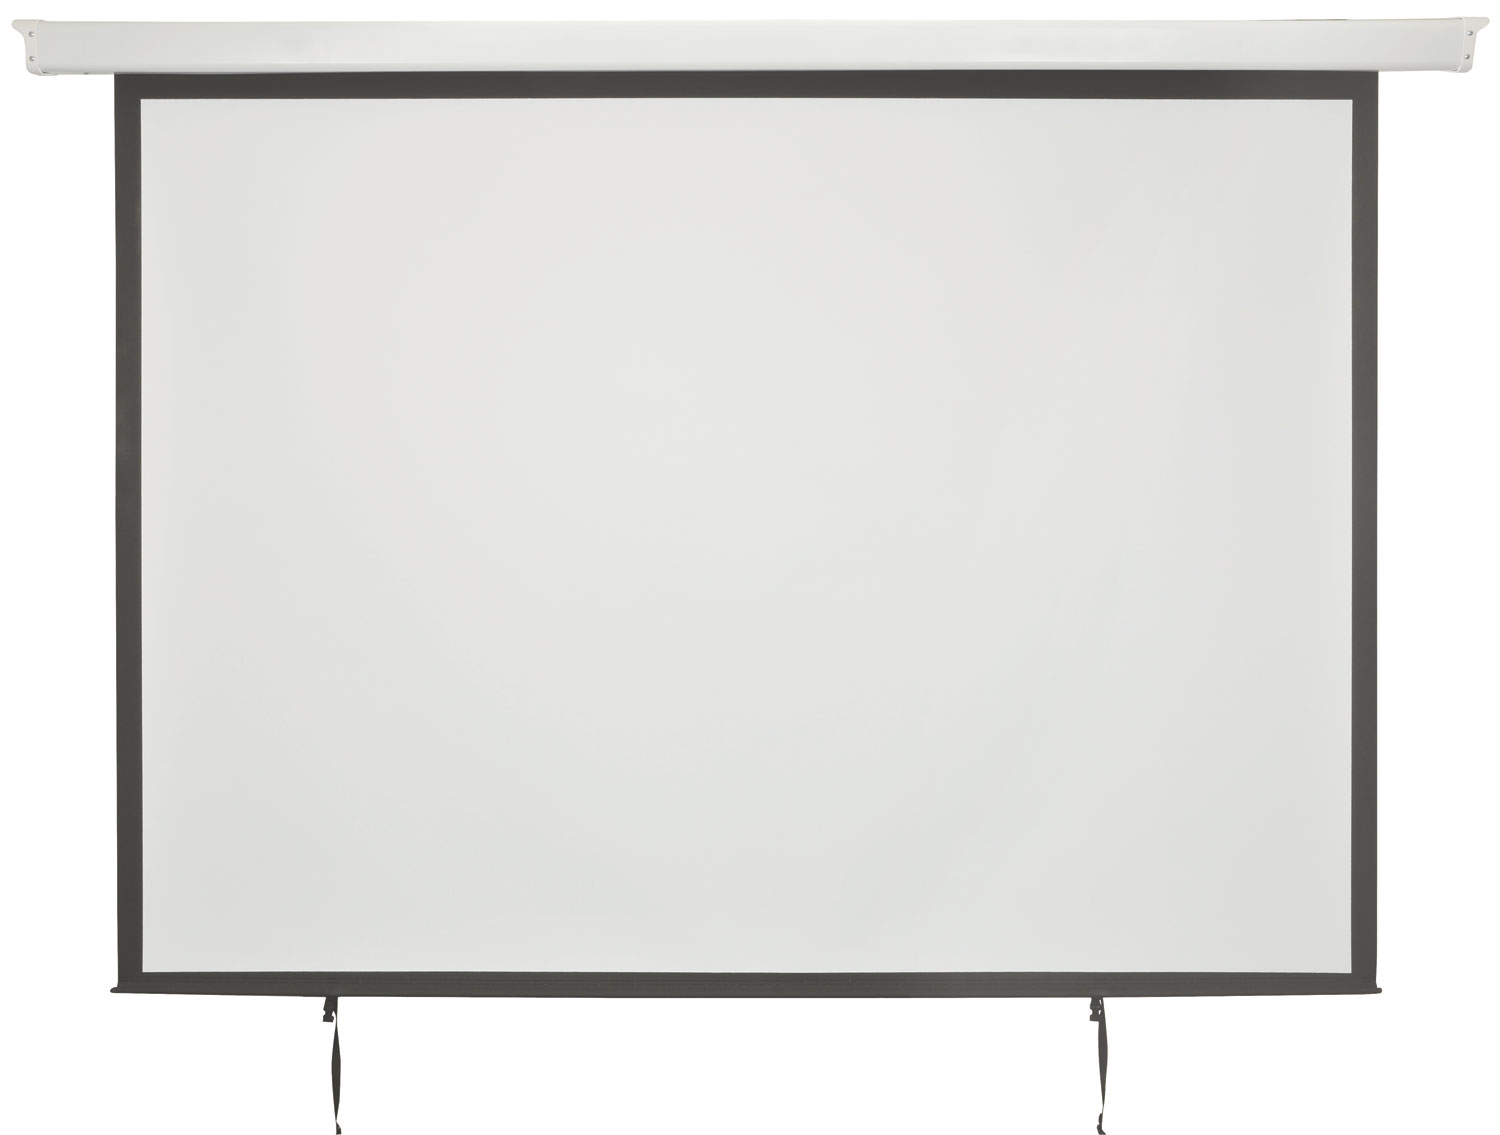 Electric Projector Screen 120